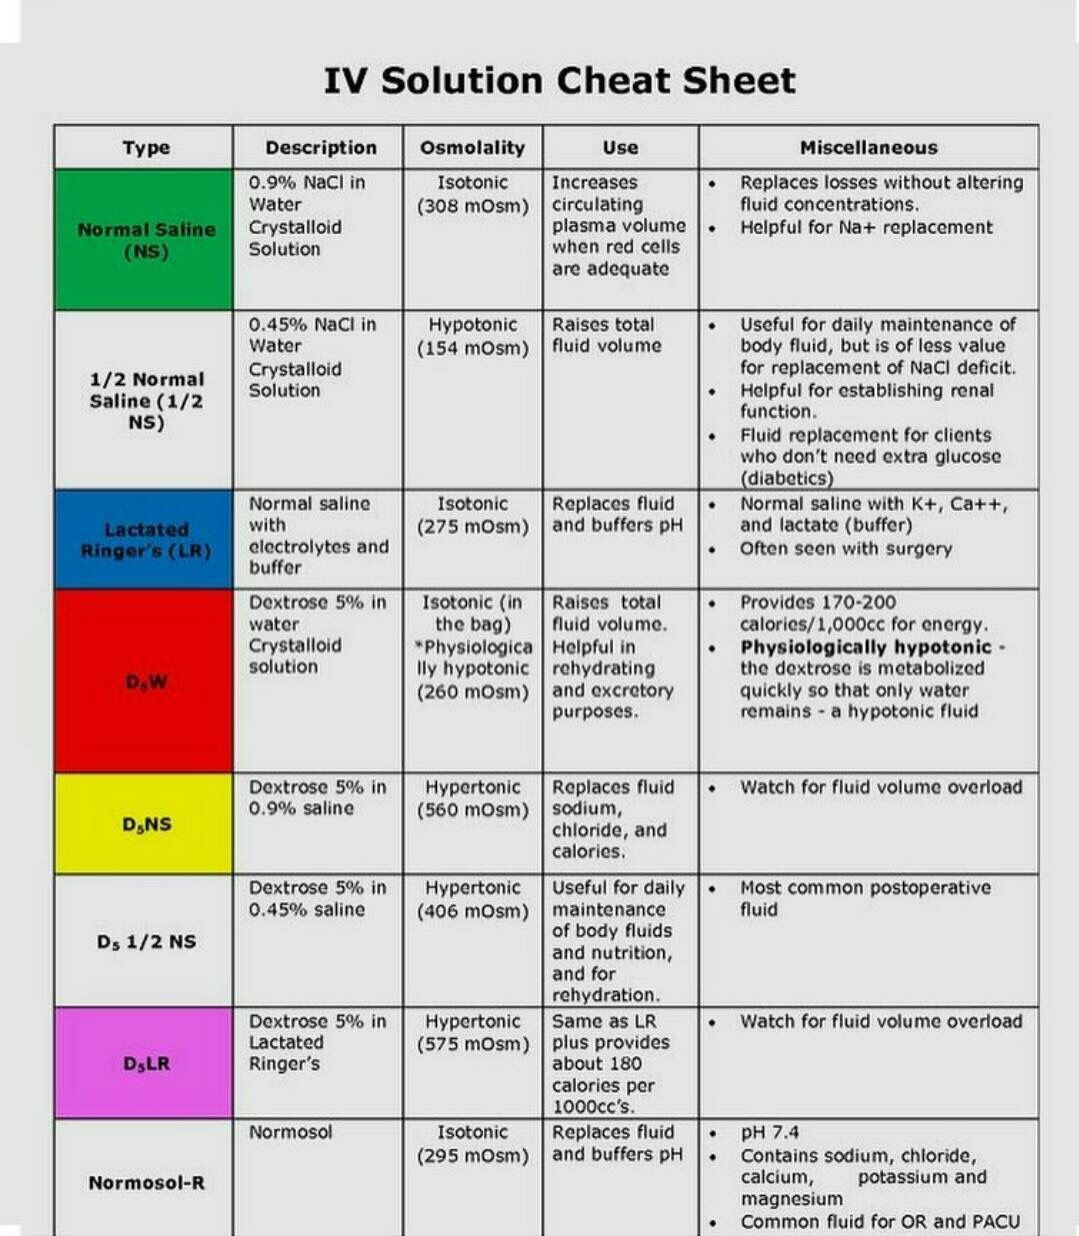 IV Fluids Cheat Sheet